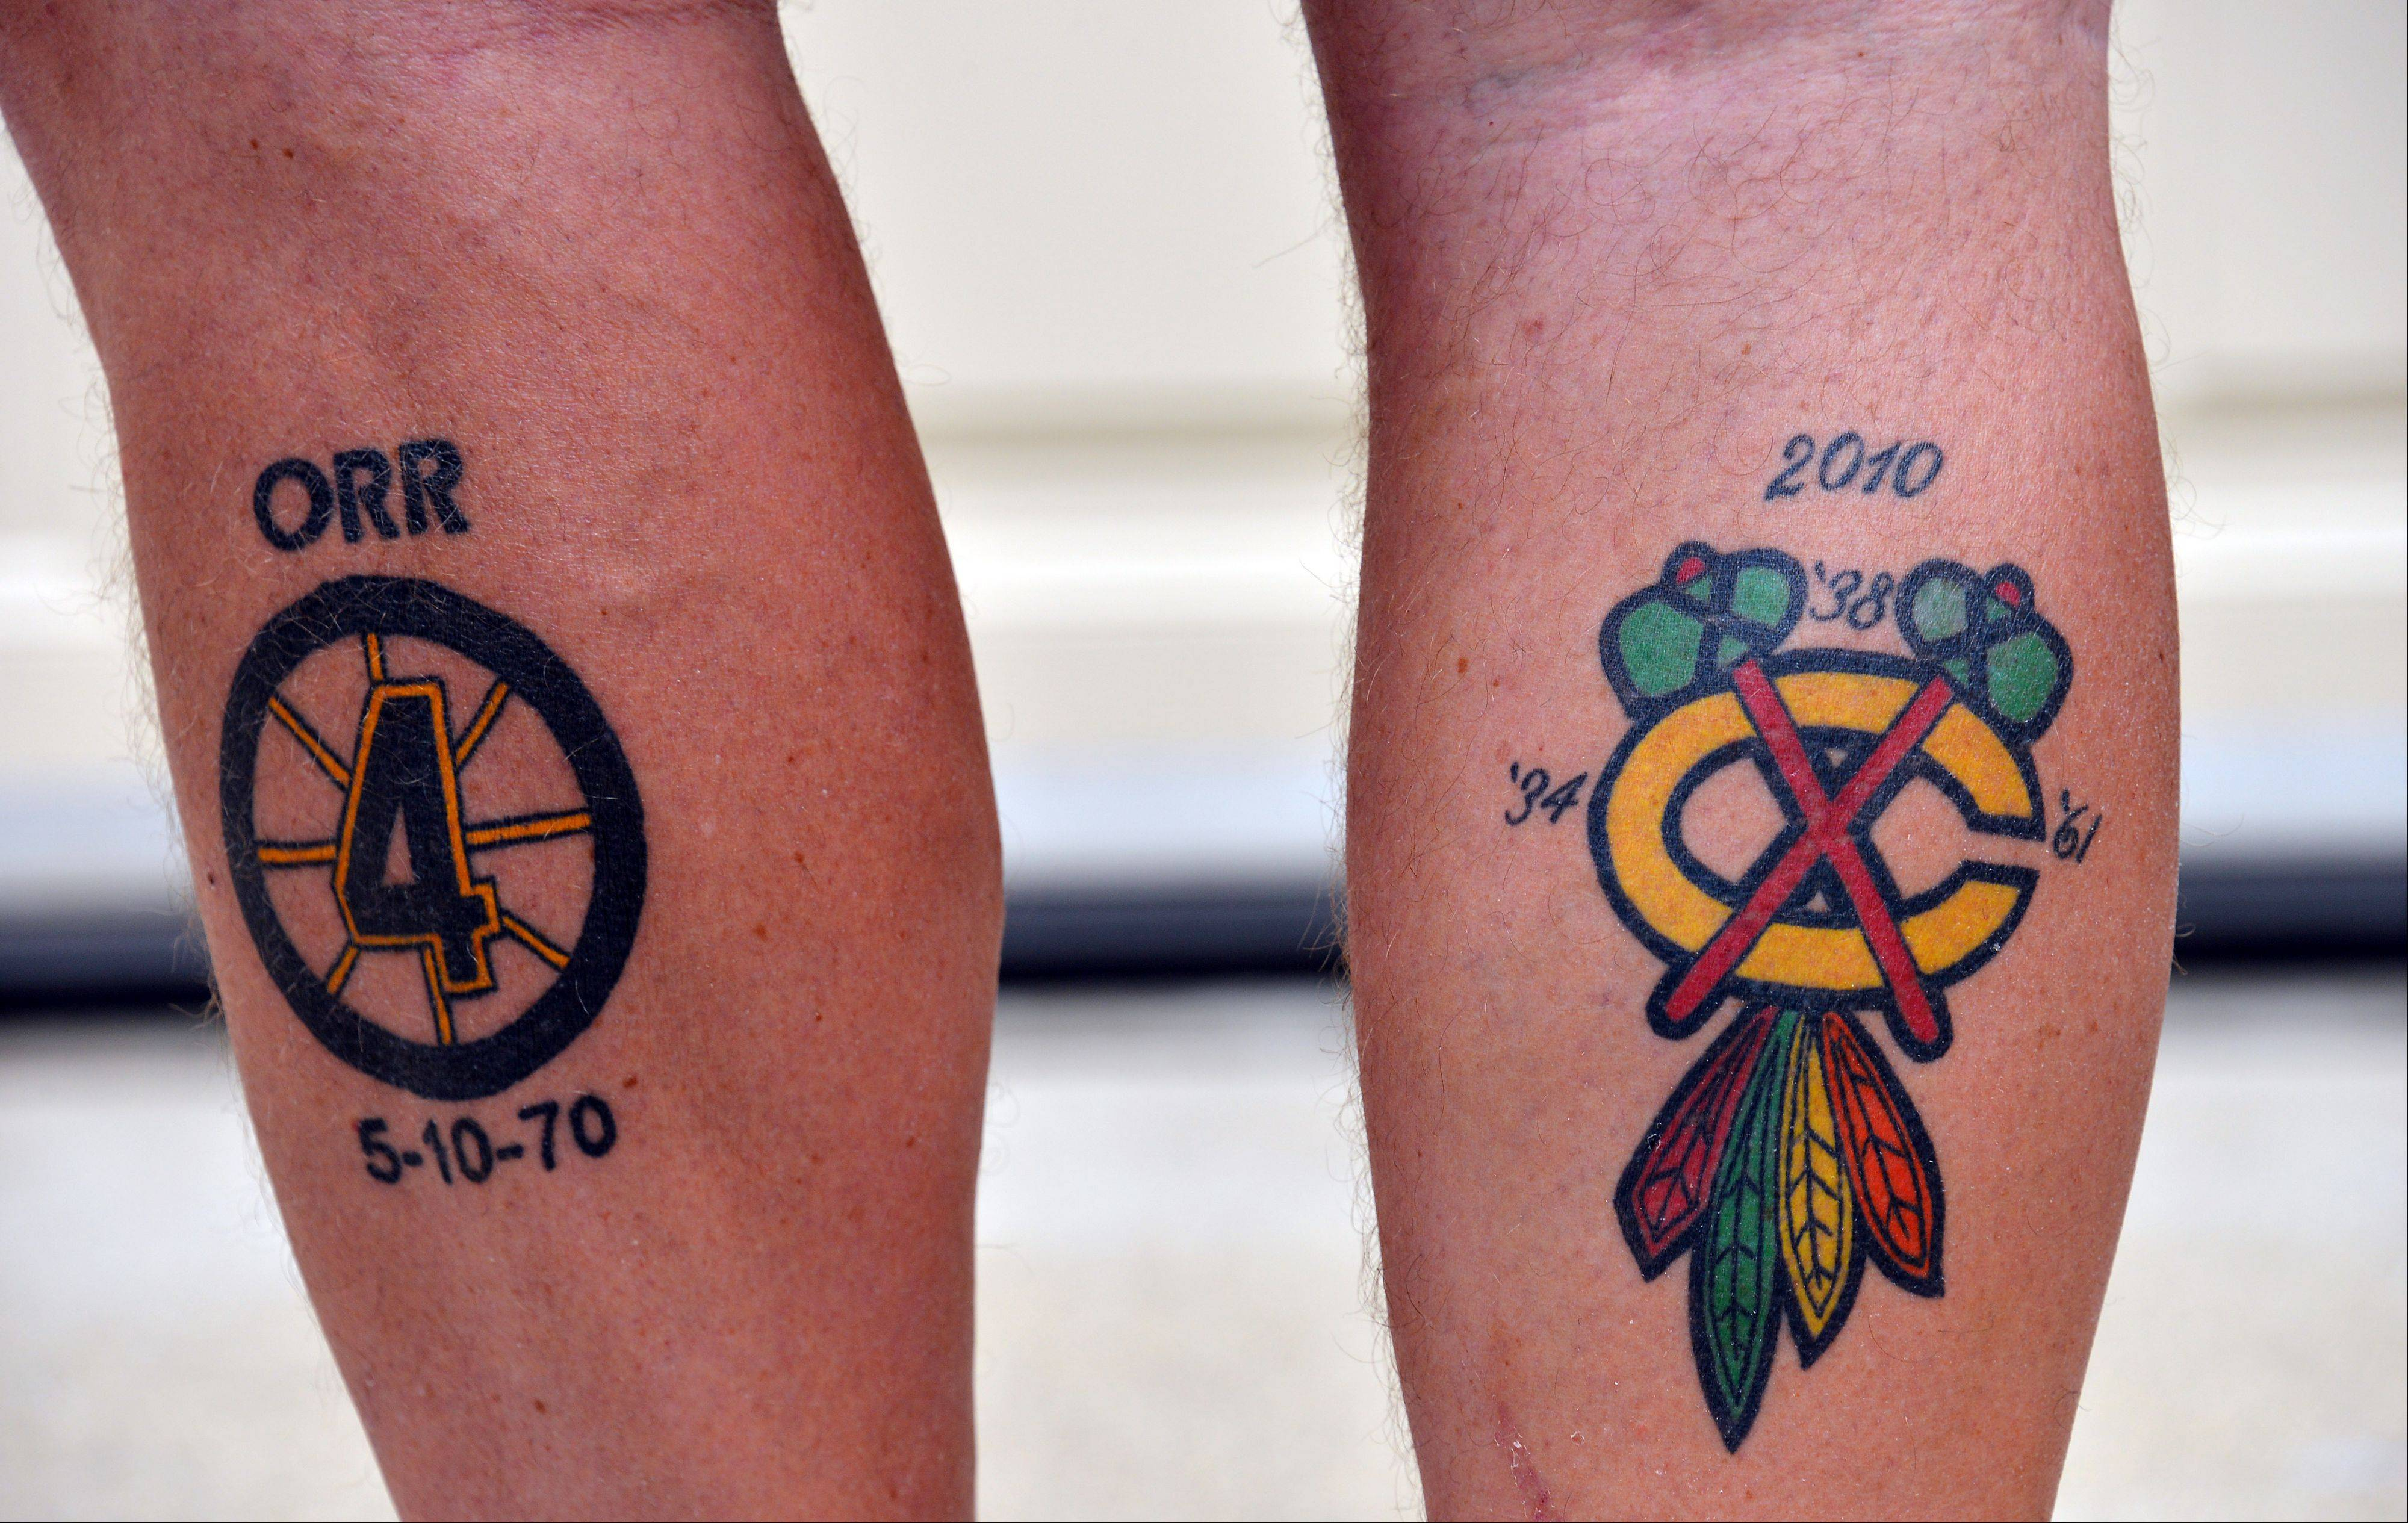 Despite Bruins ink, Mt. Prospect man is Hawks fan